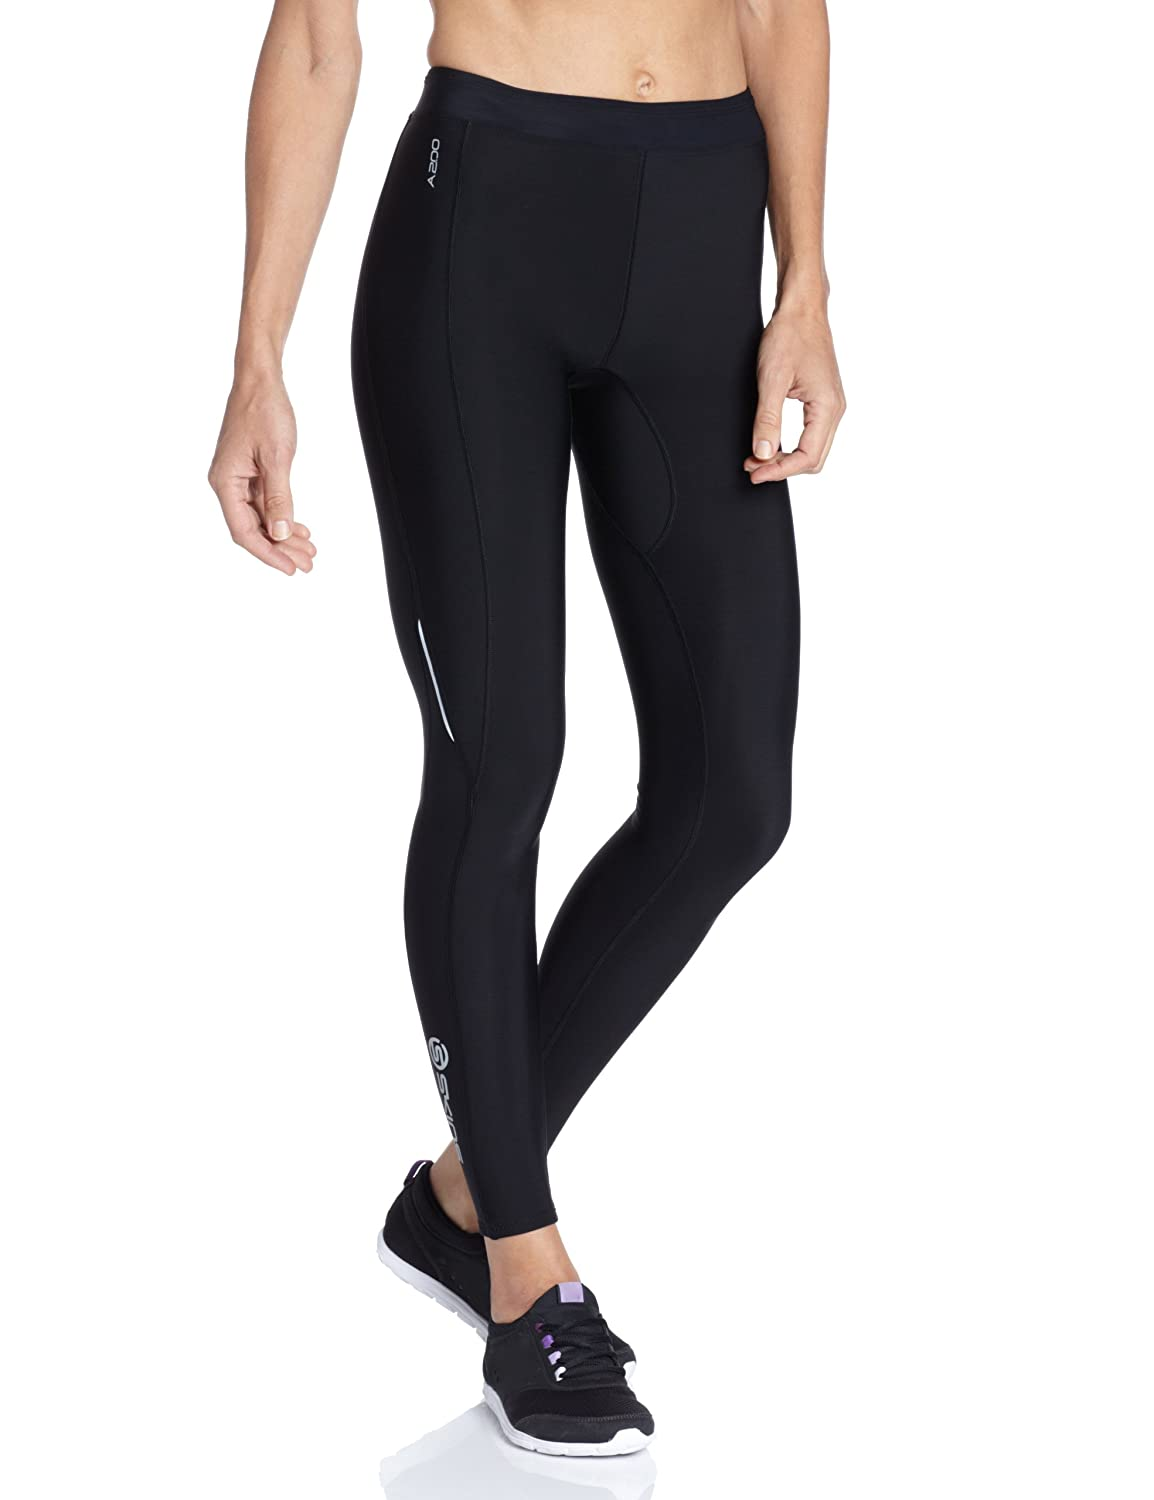 SKINS Women's A200 Thermal Compression Long Tights, Black/Black, Small B61033111FS